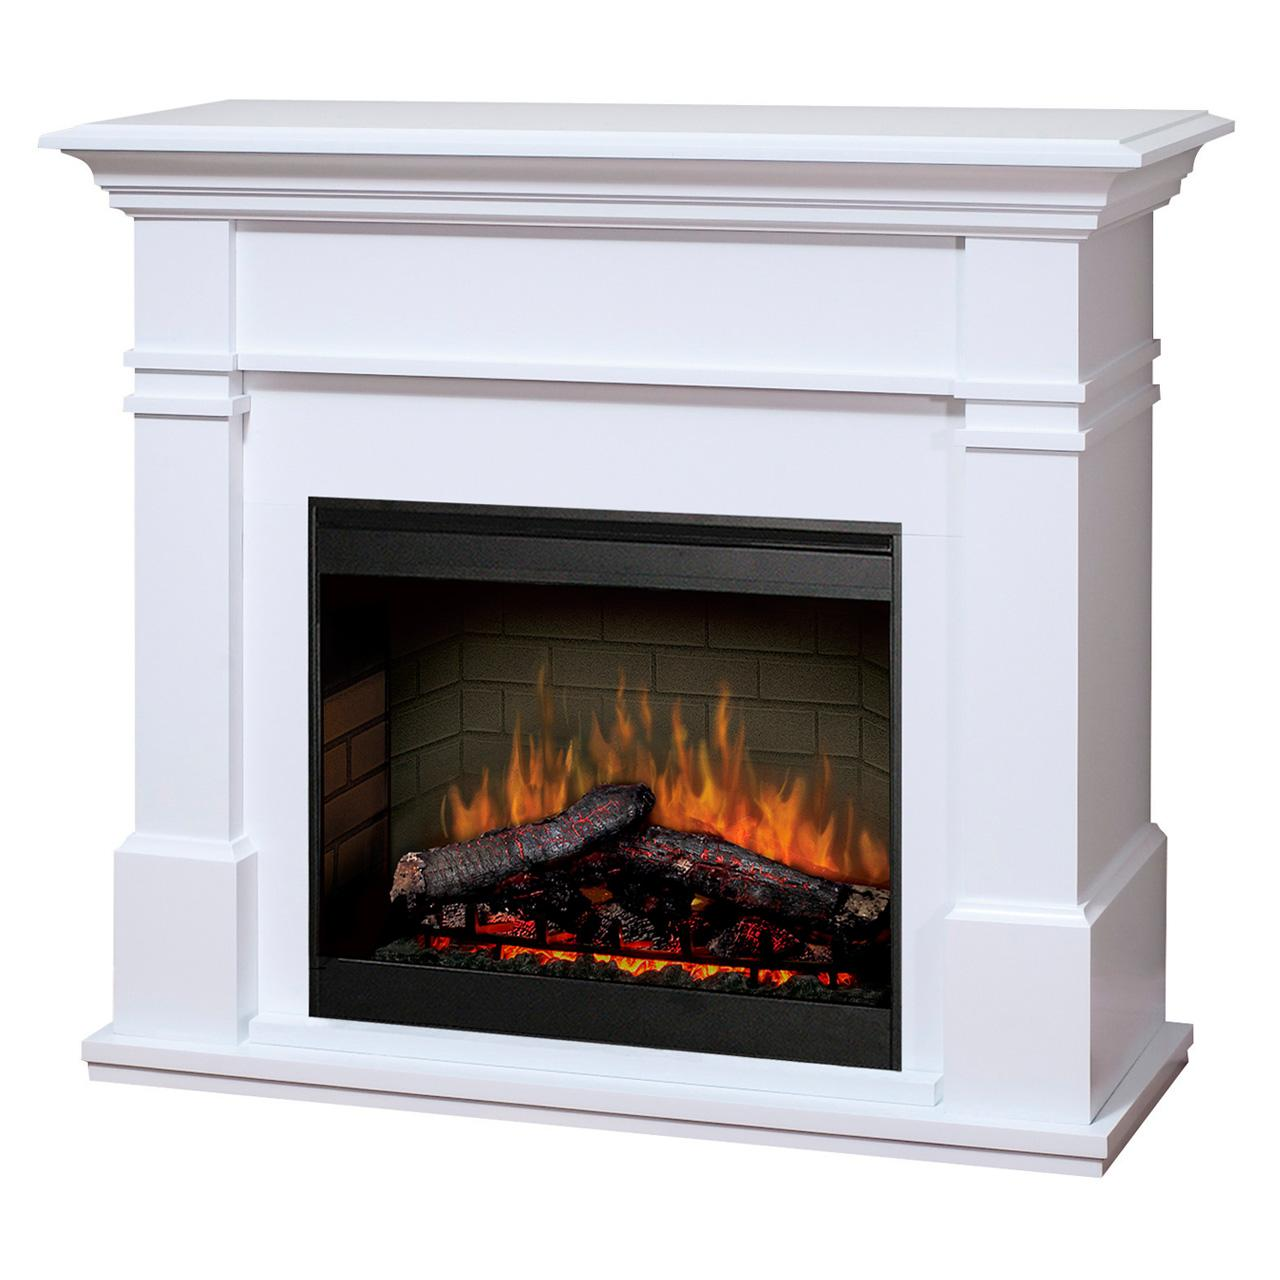 BMP130W Dimplex Bmp130w Electric Fireplace White